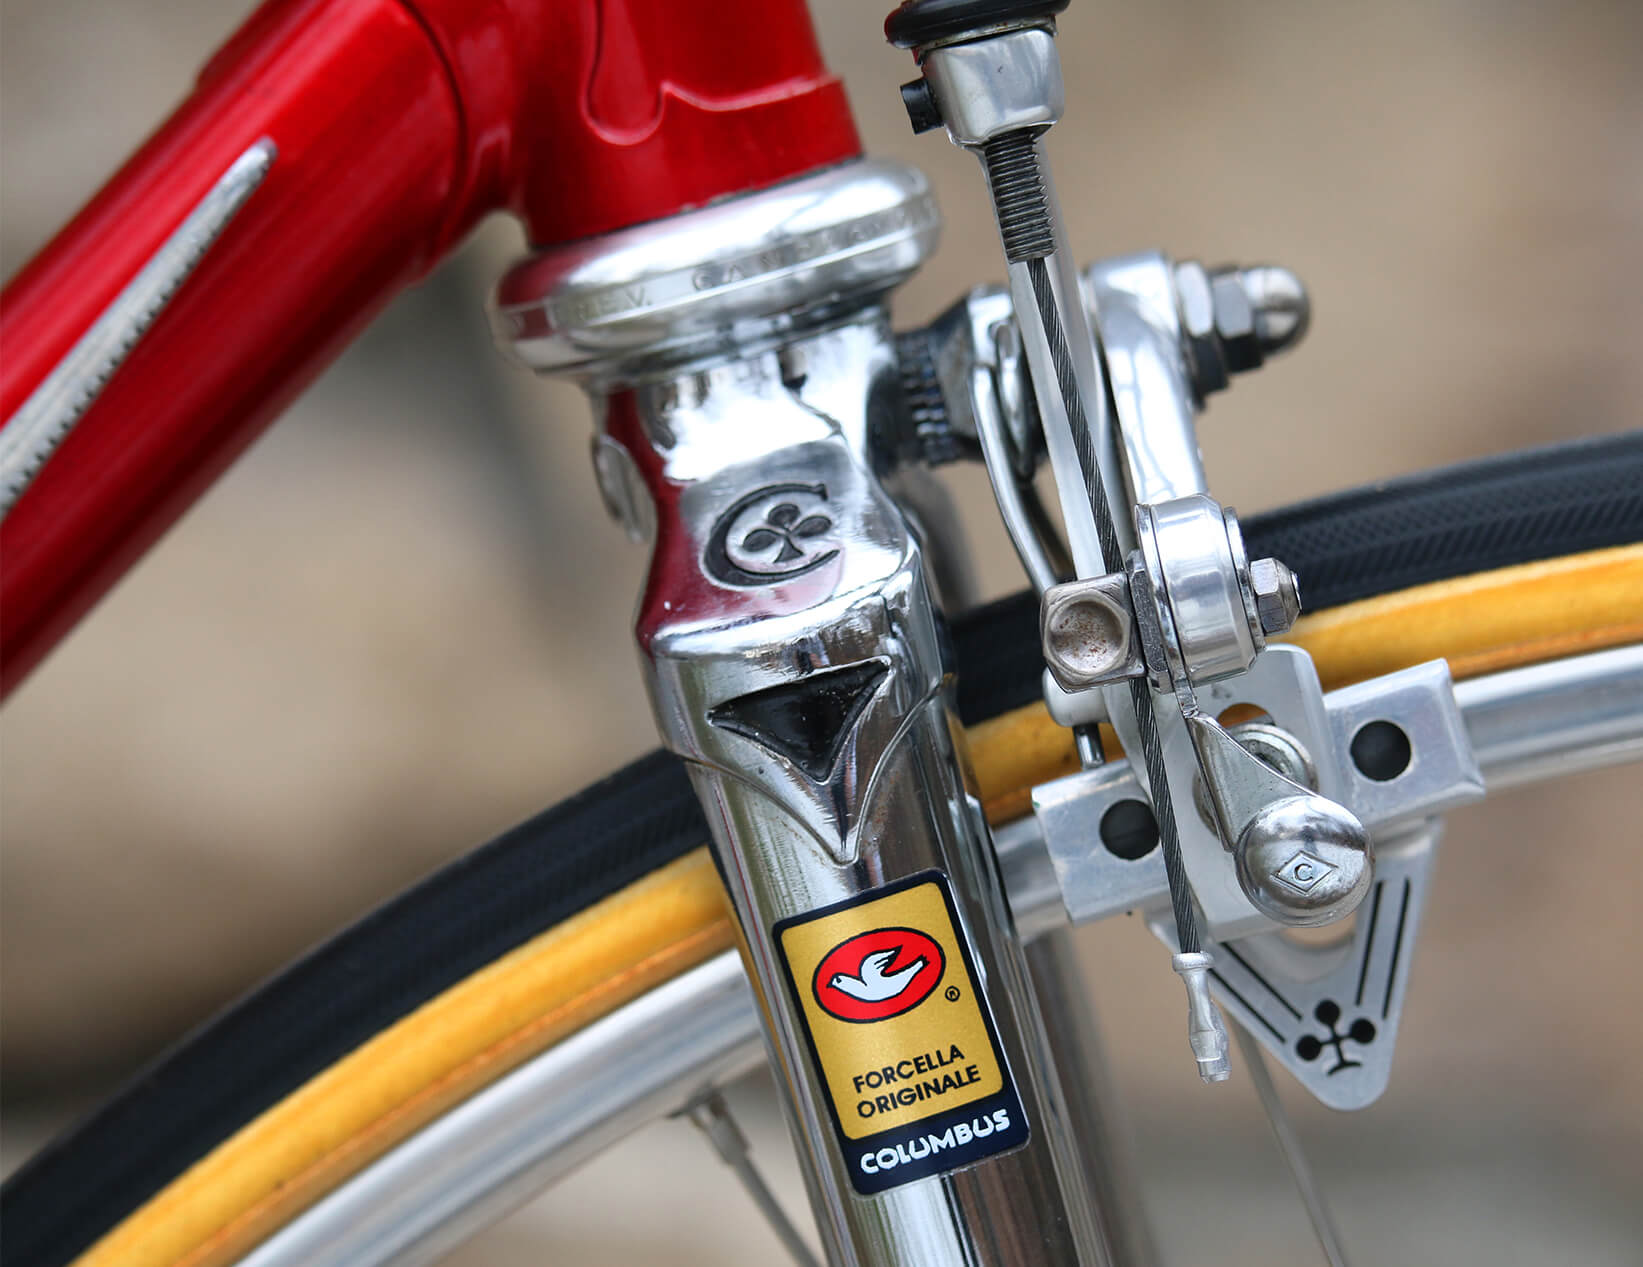 Colnago Vintage Road Bike - Columbus Fork - Contender Bicycles